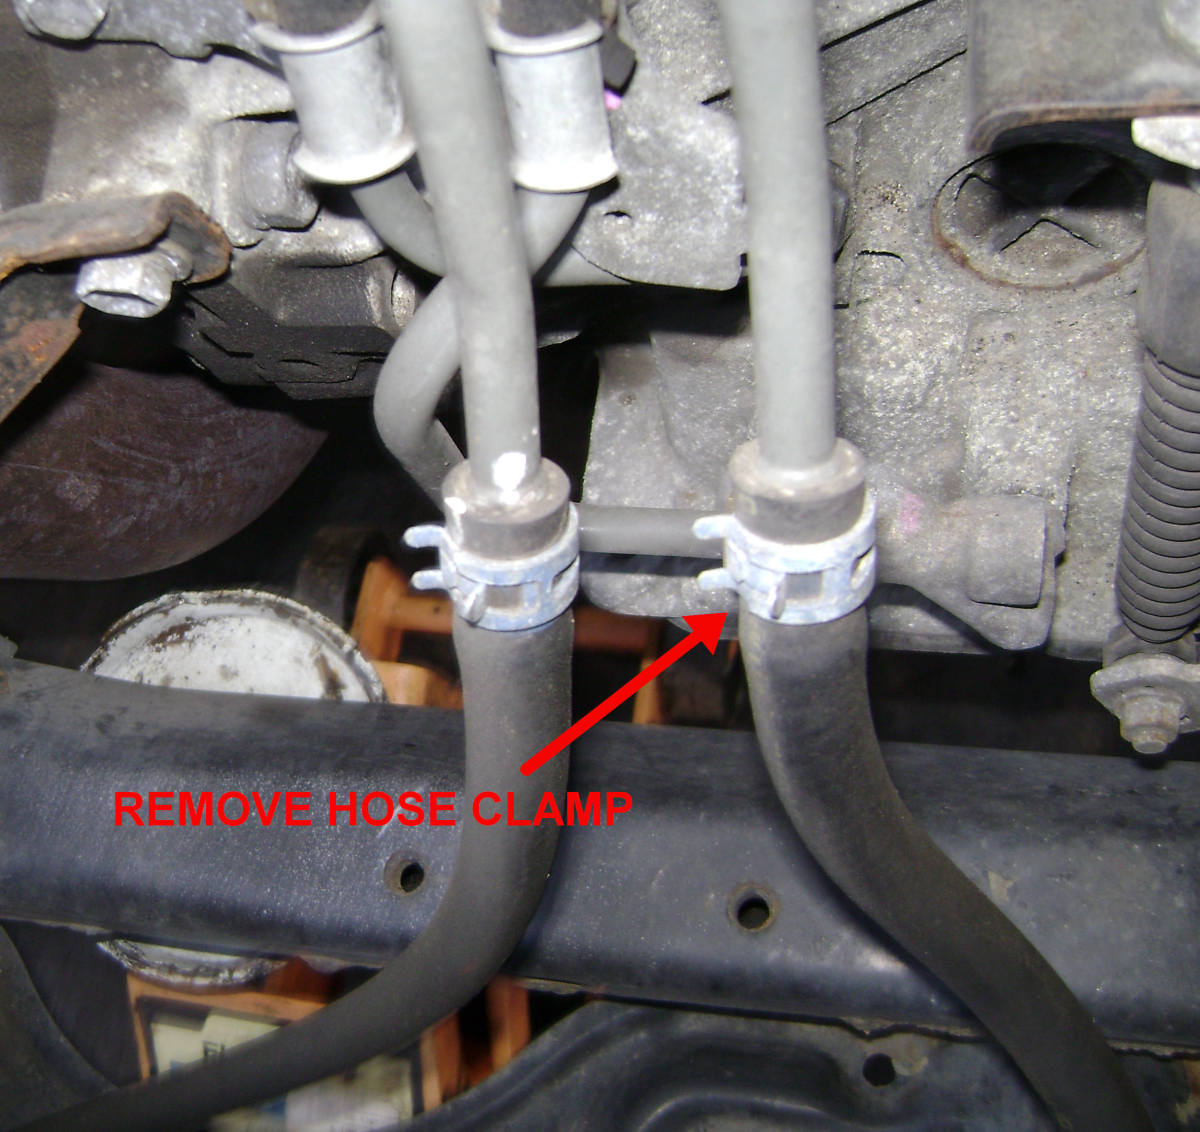 Remove the hose clamp on the ATF return line to the Camry transmission